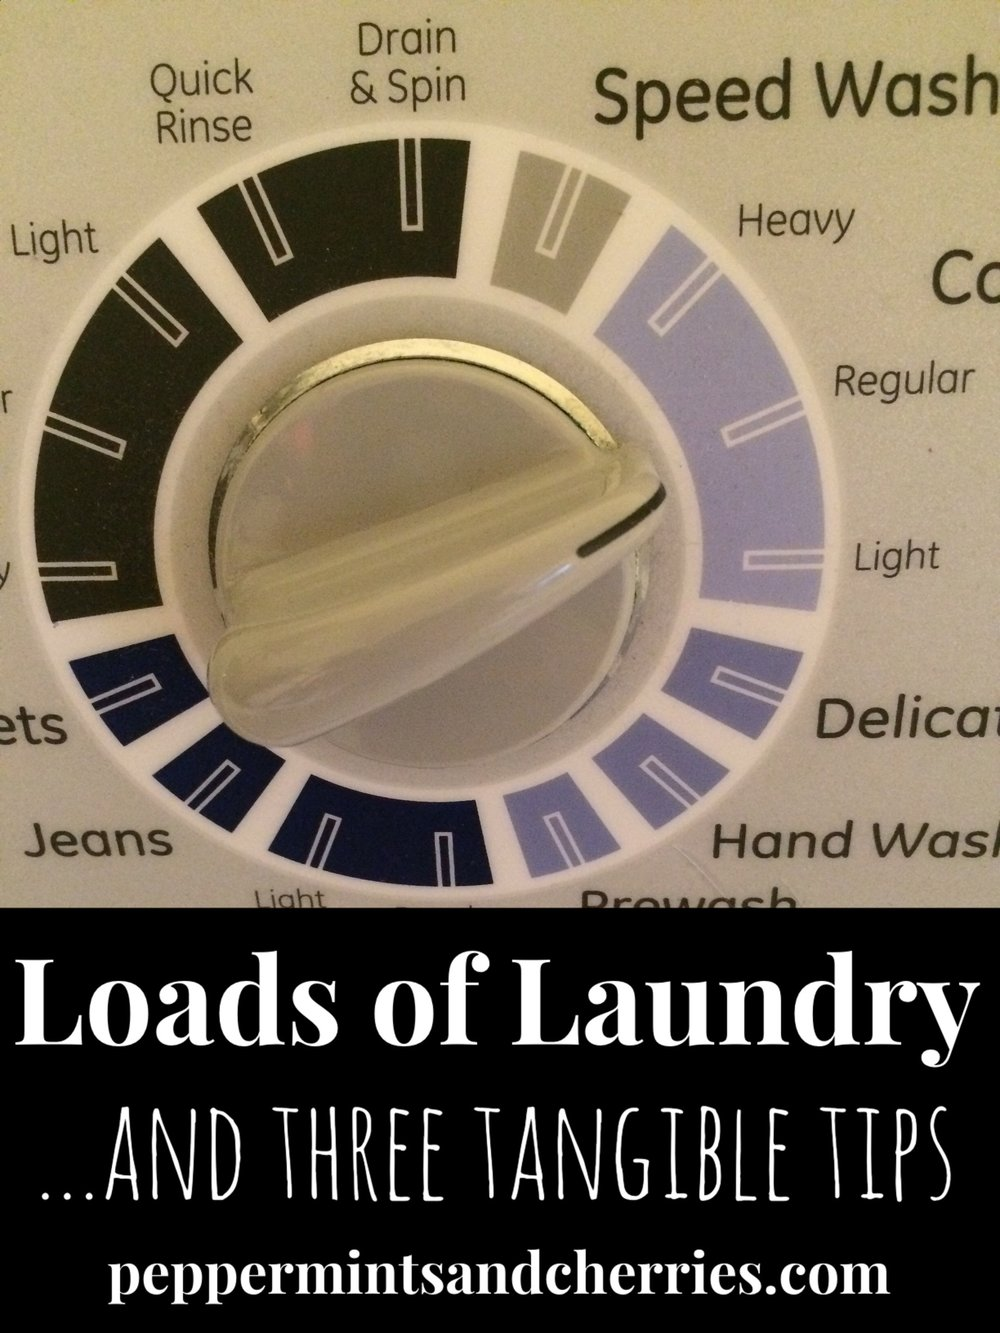 Who loves to do laundry? Probably not most people! Laundry doesn't have to be such a daunting task if the plan of attack is well thought out! Here are three helpful laundry tips for wives and moms. #laundry #cleaning #tipsformoms #laundrytips #cleaninghacks